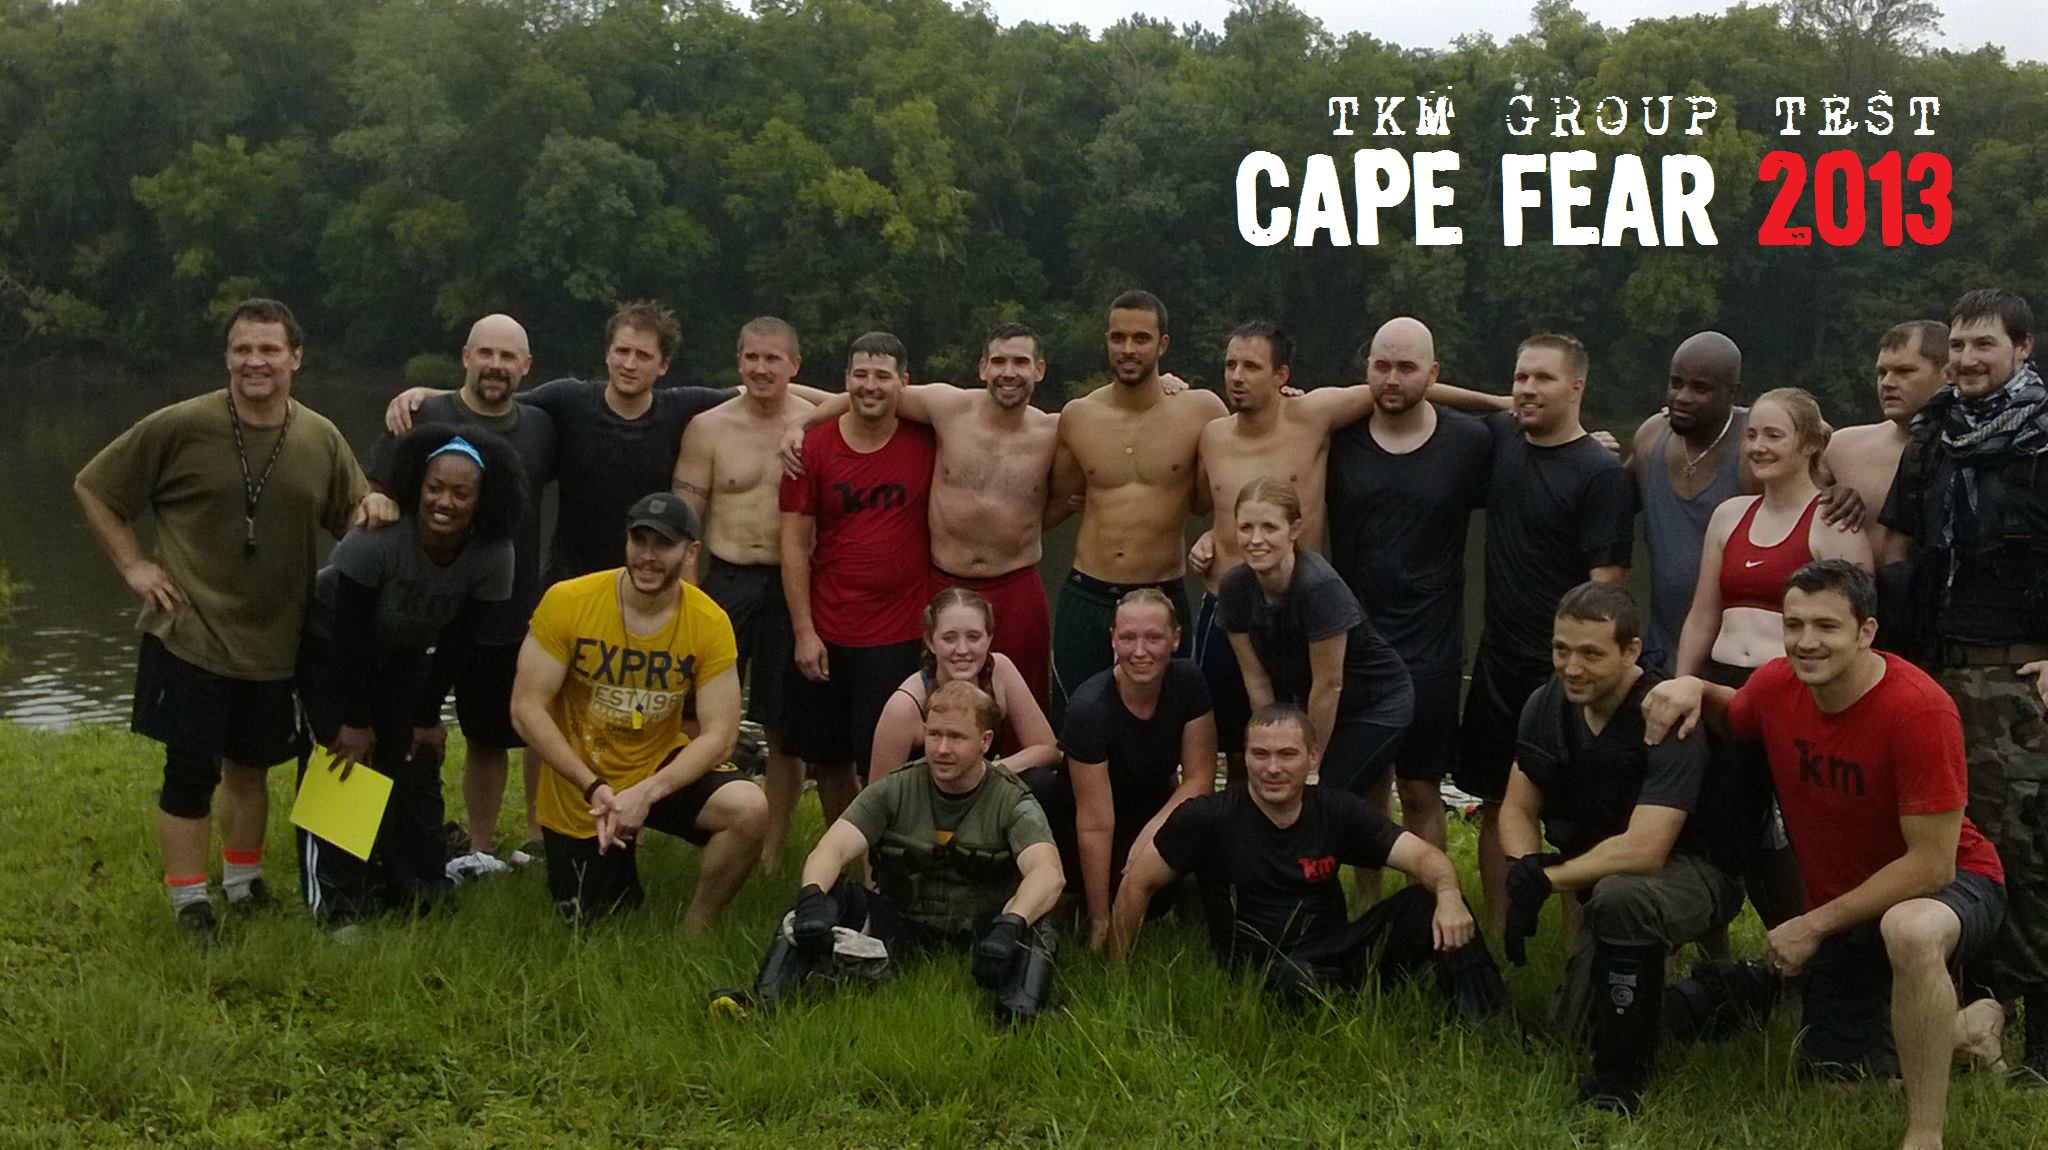 TKM Group Pic Cape Fear Ending Ad